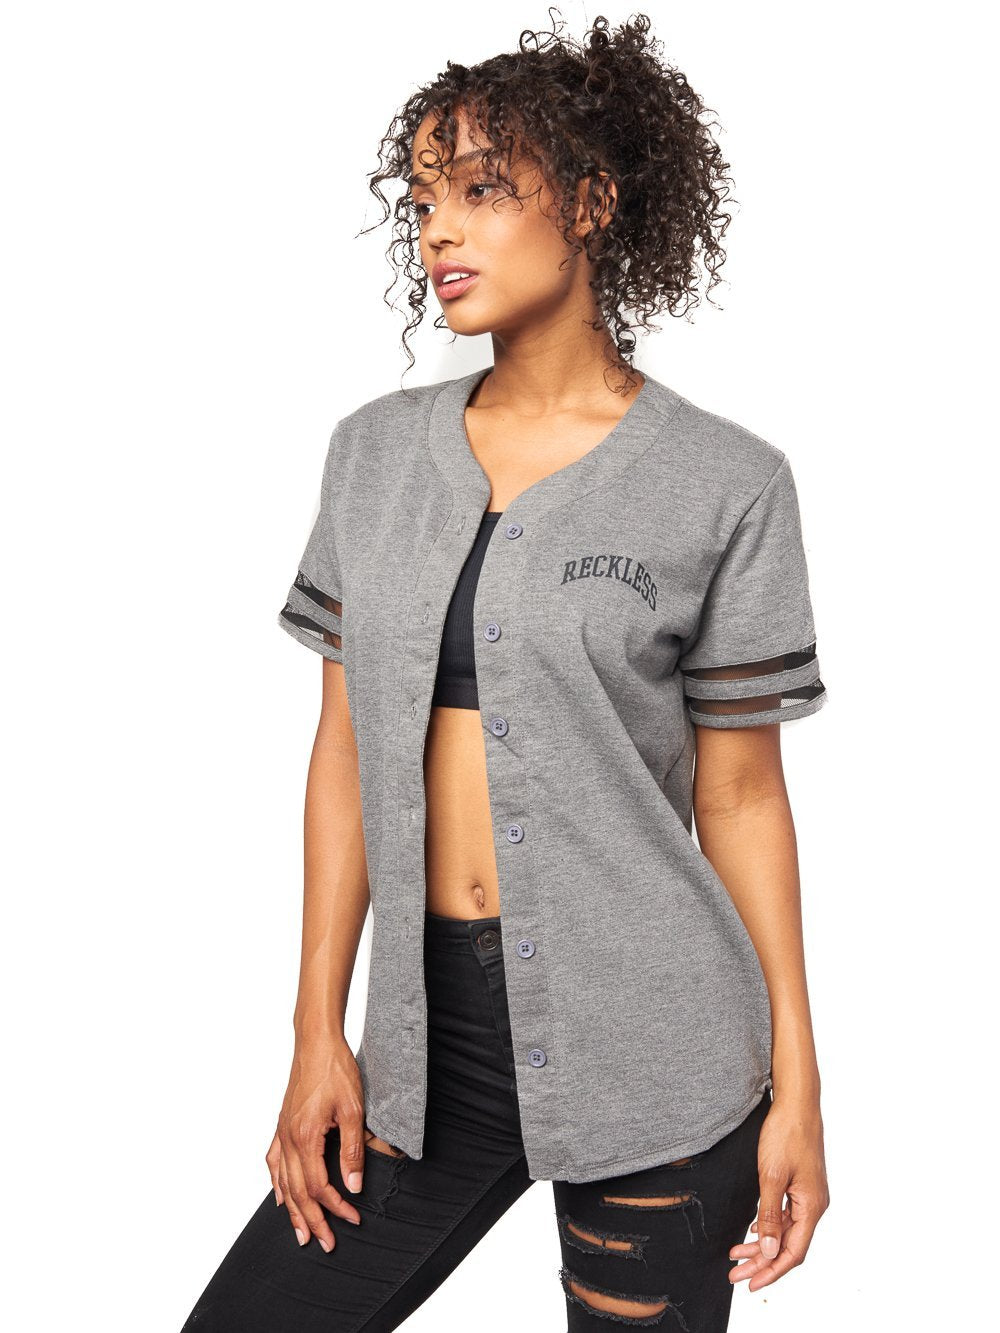 Reckless Girls Womens - Tops - Tees Drill Baseball Jersey- Charcoal